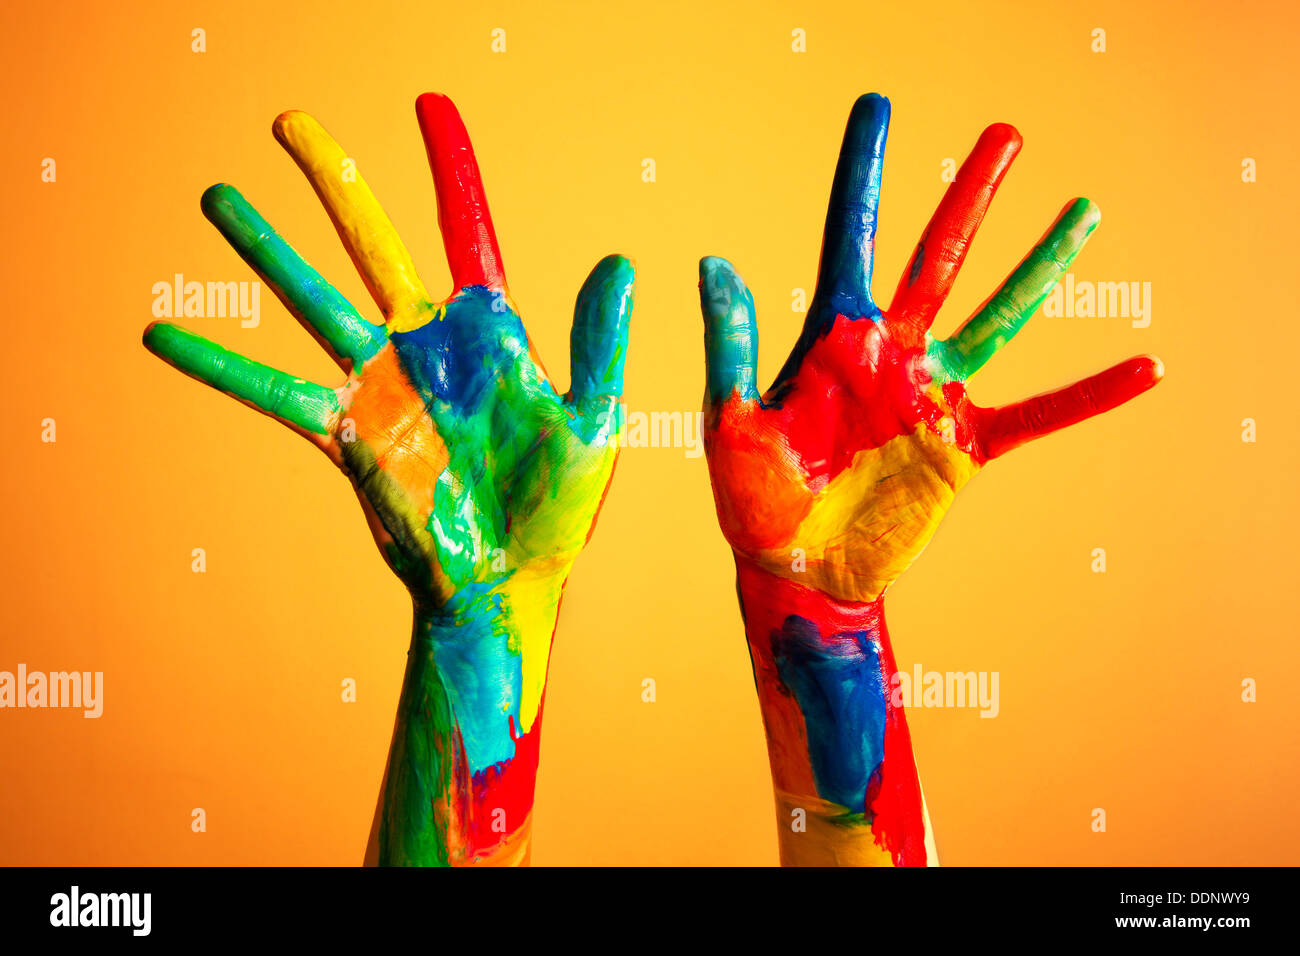 Colourful painted hands - creativity / artist / artistic / ideas / happiness / diversity concept - Stock Image